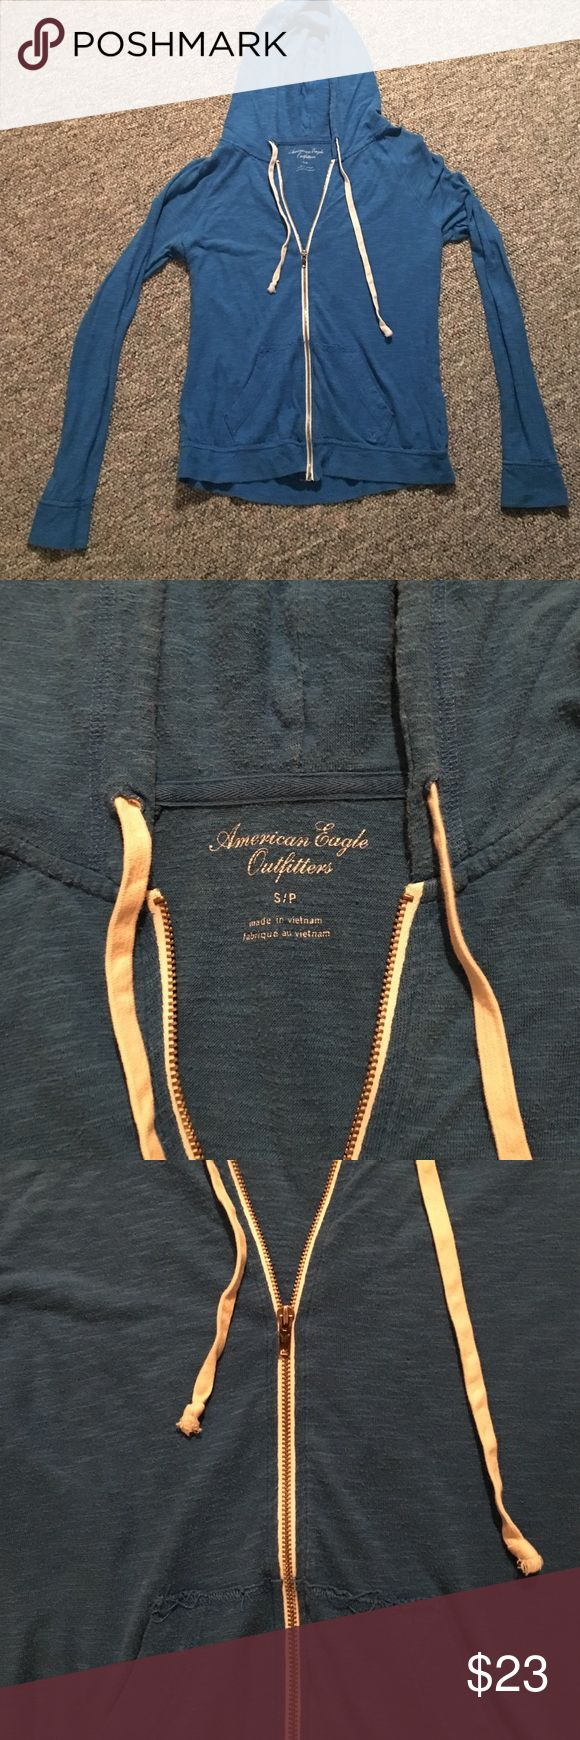 Blue zip up with hood. Light weight ocean blue zip up hoodie with white drawstring and zipper outline accents. Front pockets with small logo. American Eagle Outfitters Tops Sweatshirts & Hoodies